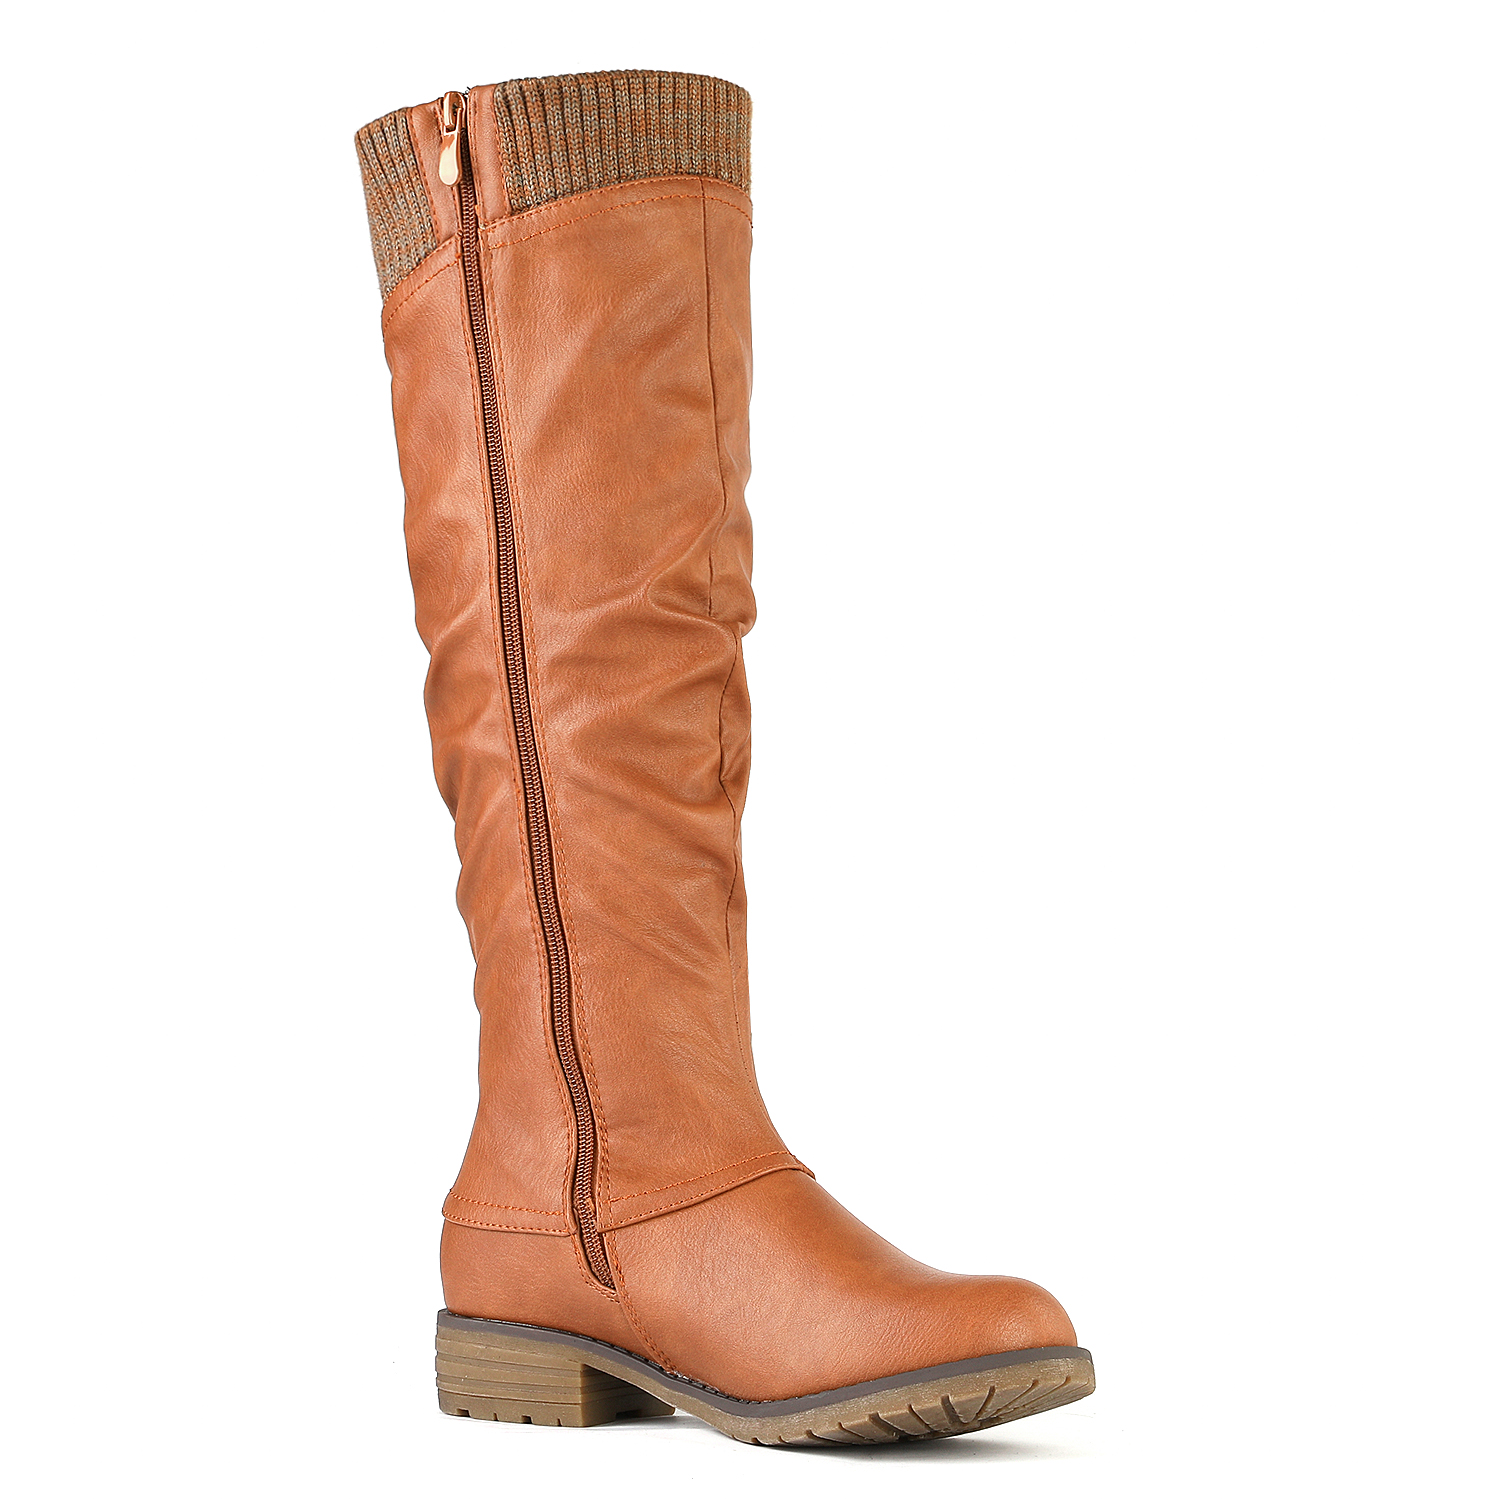 DREAM-PAIRS-Womens-DEPP-Cowgirl-Soft-PU-Leather-Combat-Knee-High-Riding-Boots thumbnail 22